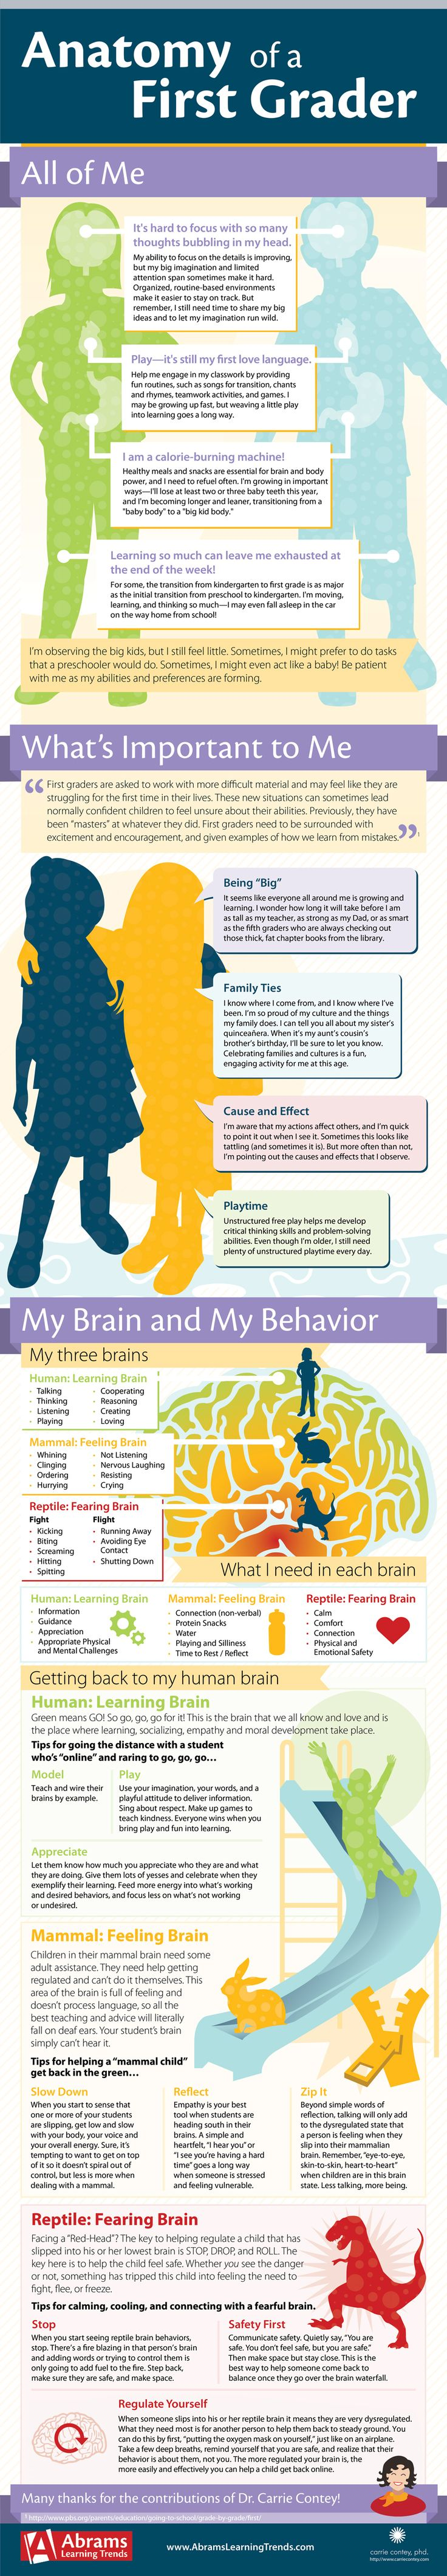 "#Infographic with physical, social, cognitive, and emotional norms for #firstgrade. Awesome info! Often caught between being little and wanting to feel ""big"", first grade can be a challenging time. For many, it's the first time that learning becomes somewhat difficult. Children who expressed confidence in kindergarten may display new anxieties and self-confidence issues"